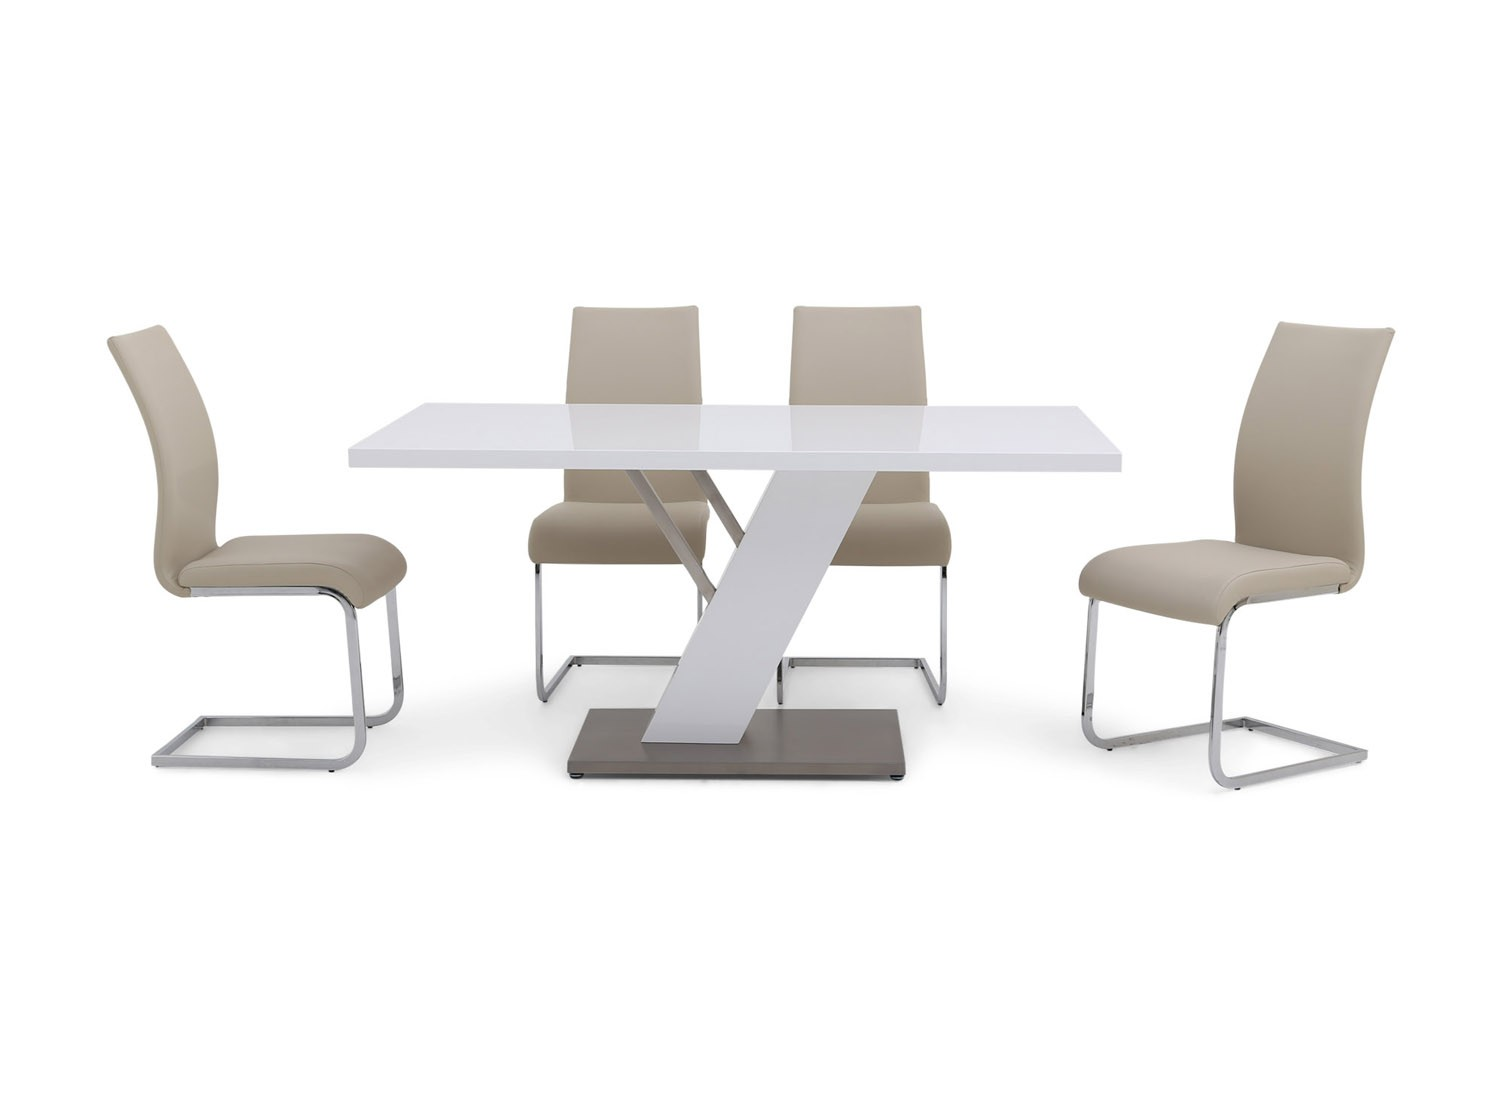 https://www.firstfurniture.co.uk/pub/media/catalog/product/f/a/fairmont_stephano_white_high_gloss_dining_table_6_paolo_black_chairs_1.jpg